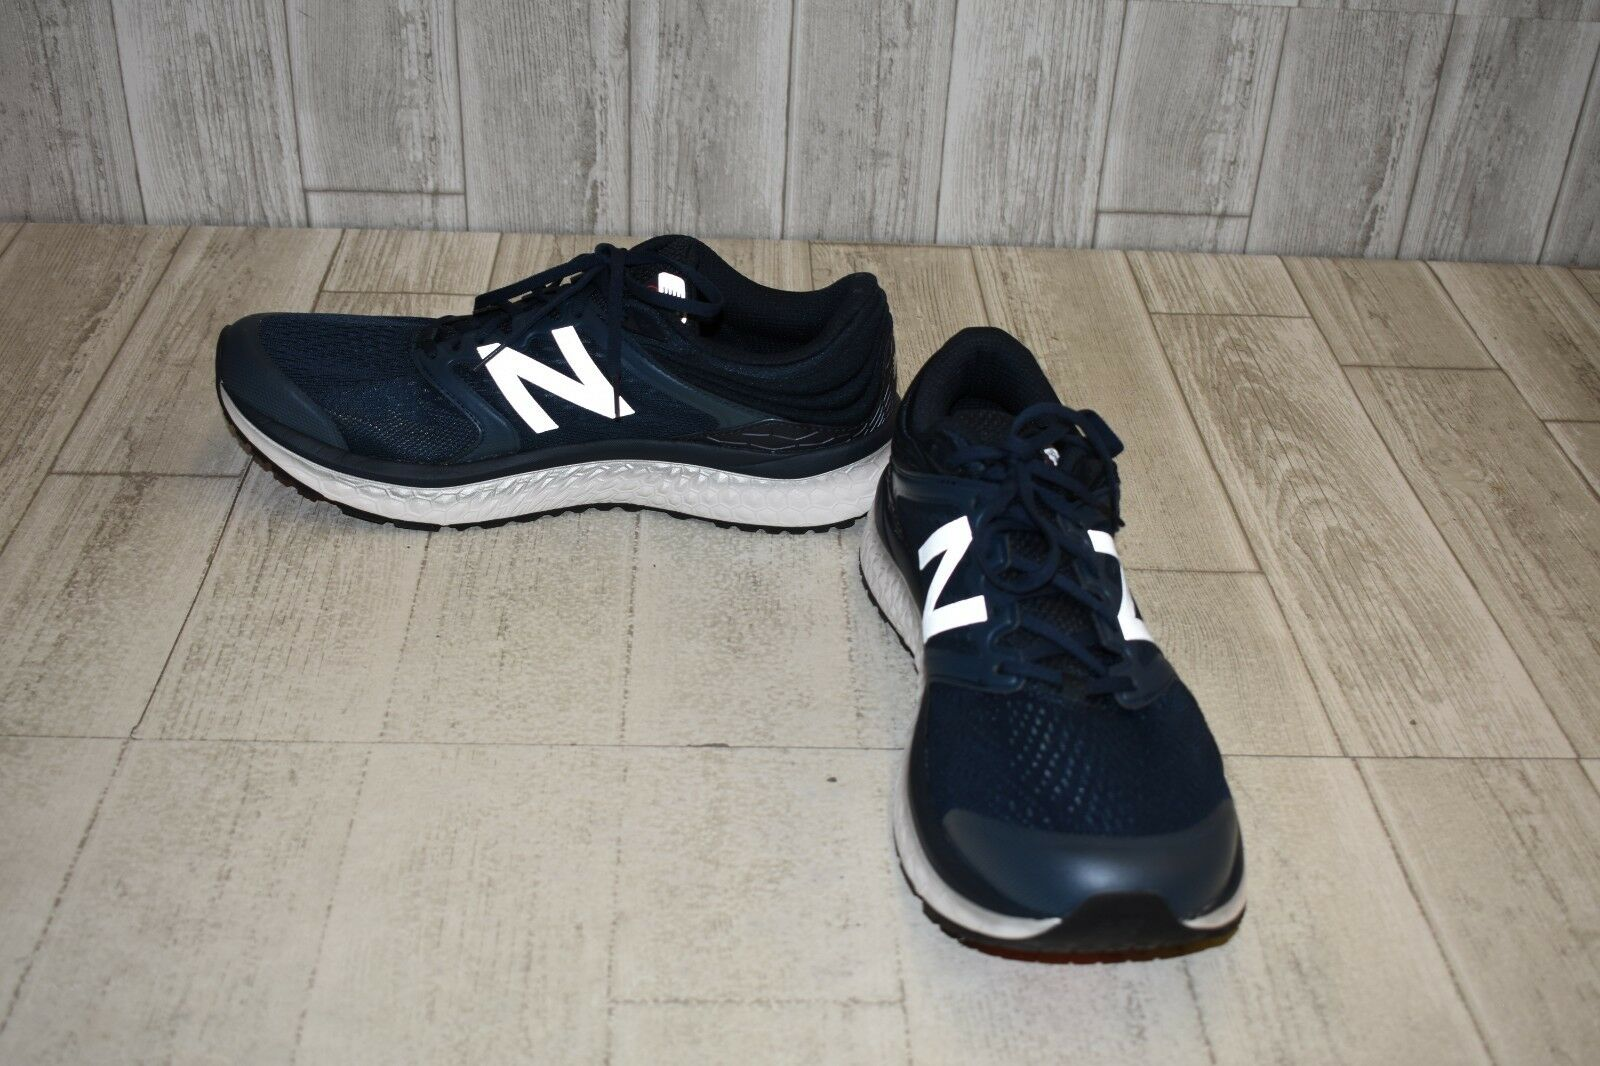 New Balance Fresh Foam 1080v8 Sneaker - Men's Size 16 2E, Navy